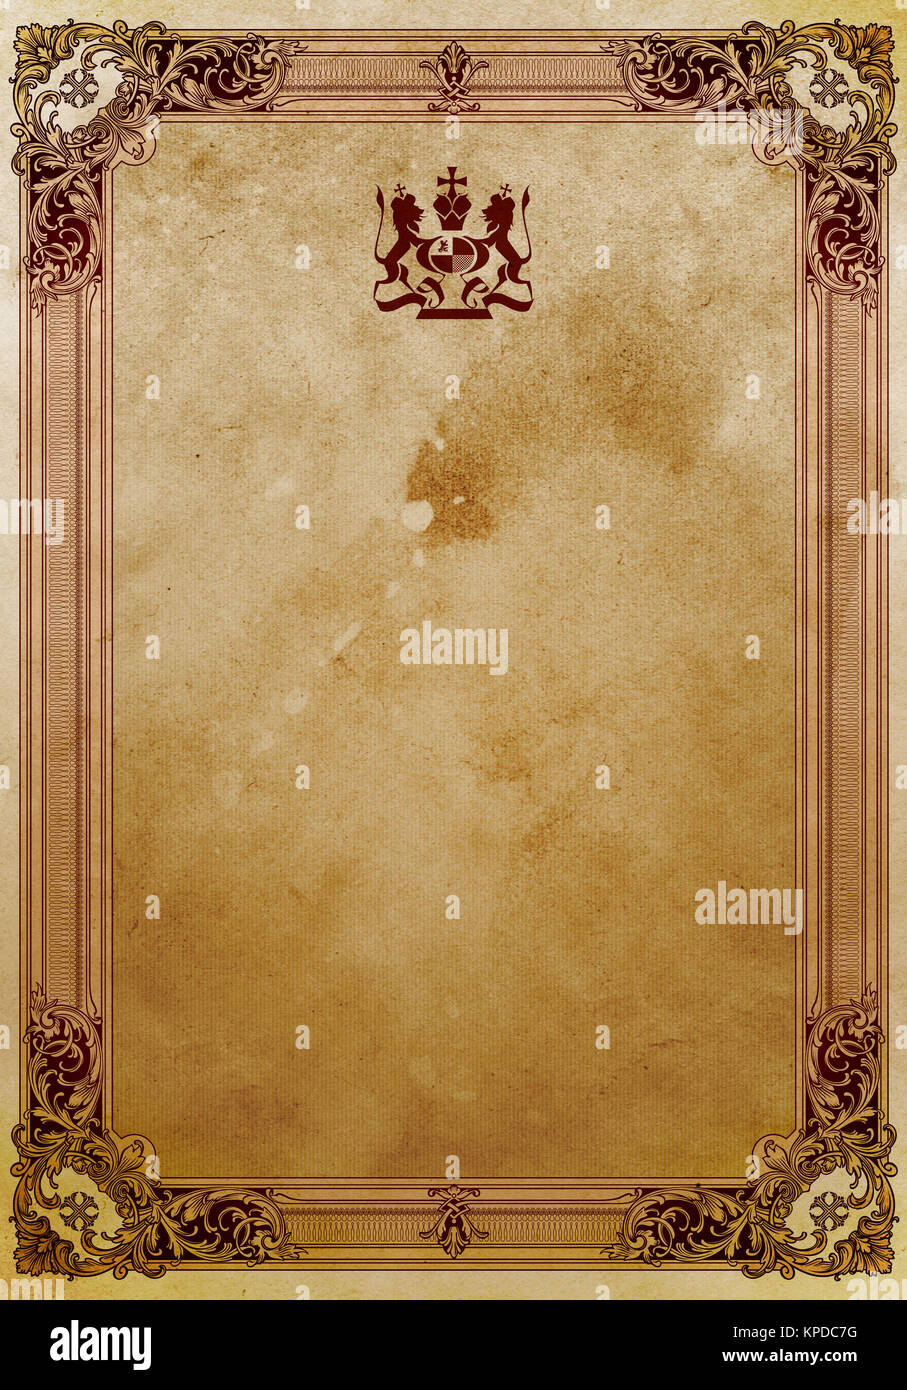 Old Grunge Paper Background With Decorative Vintage Border